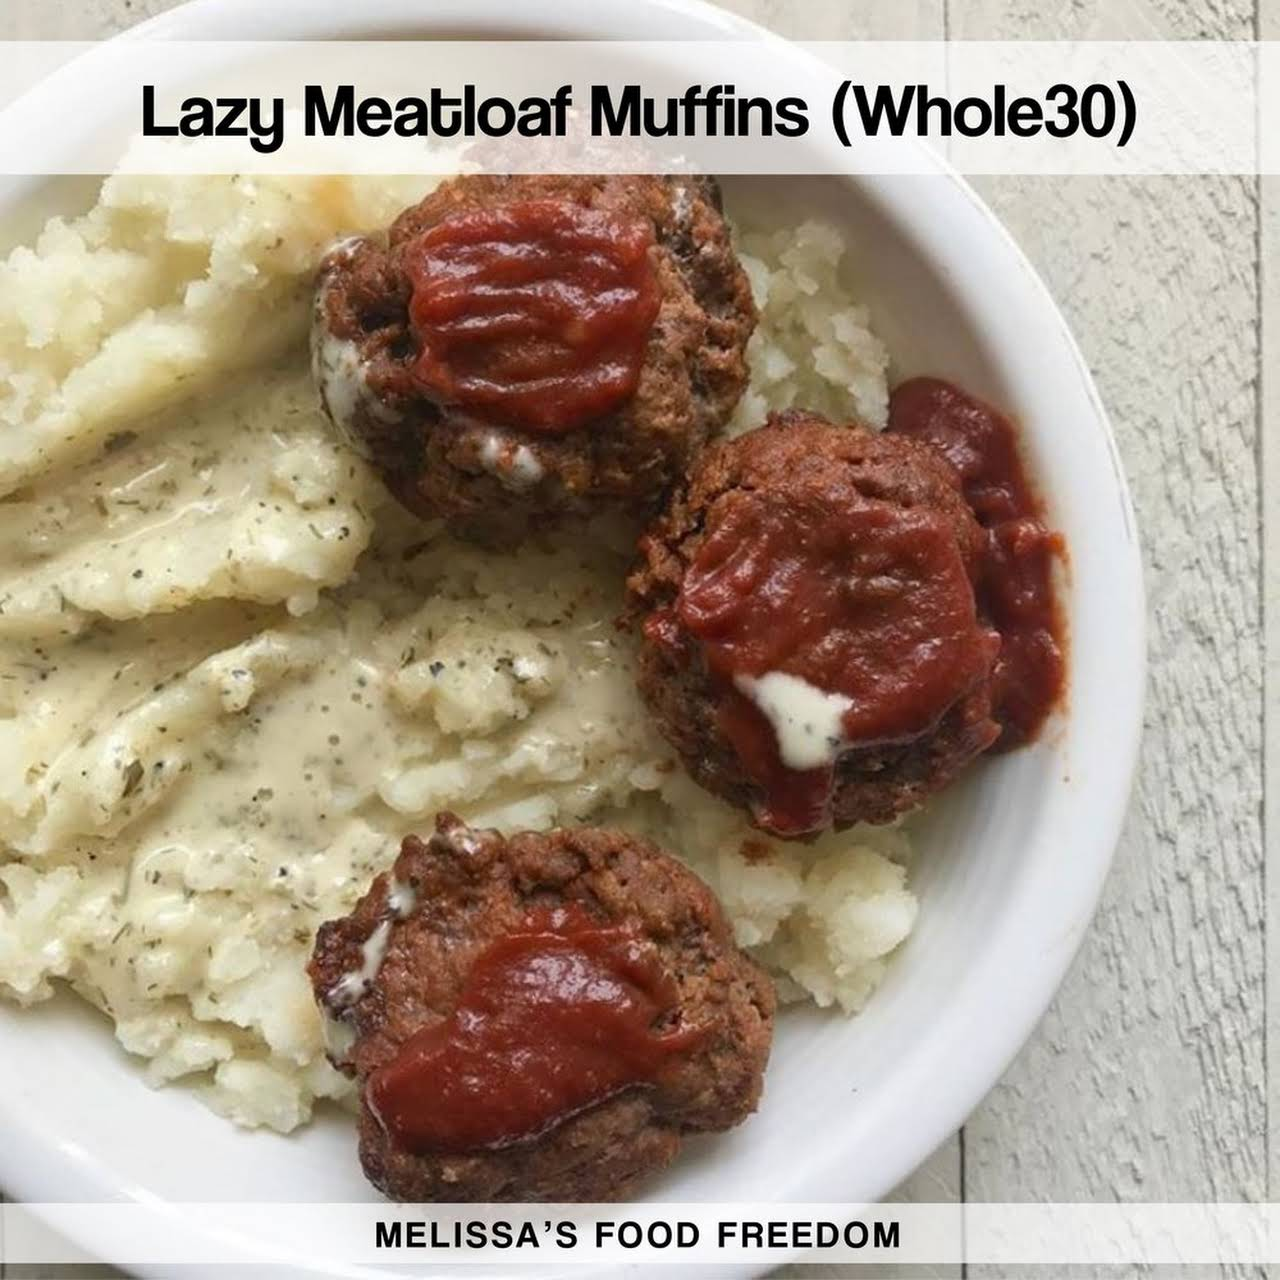 Lazy Meatloaf Muffins (Whole30)